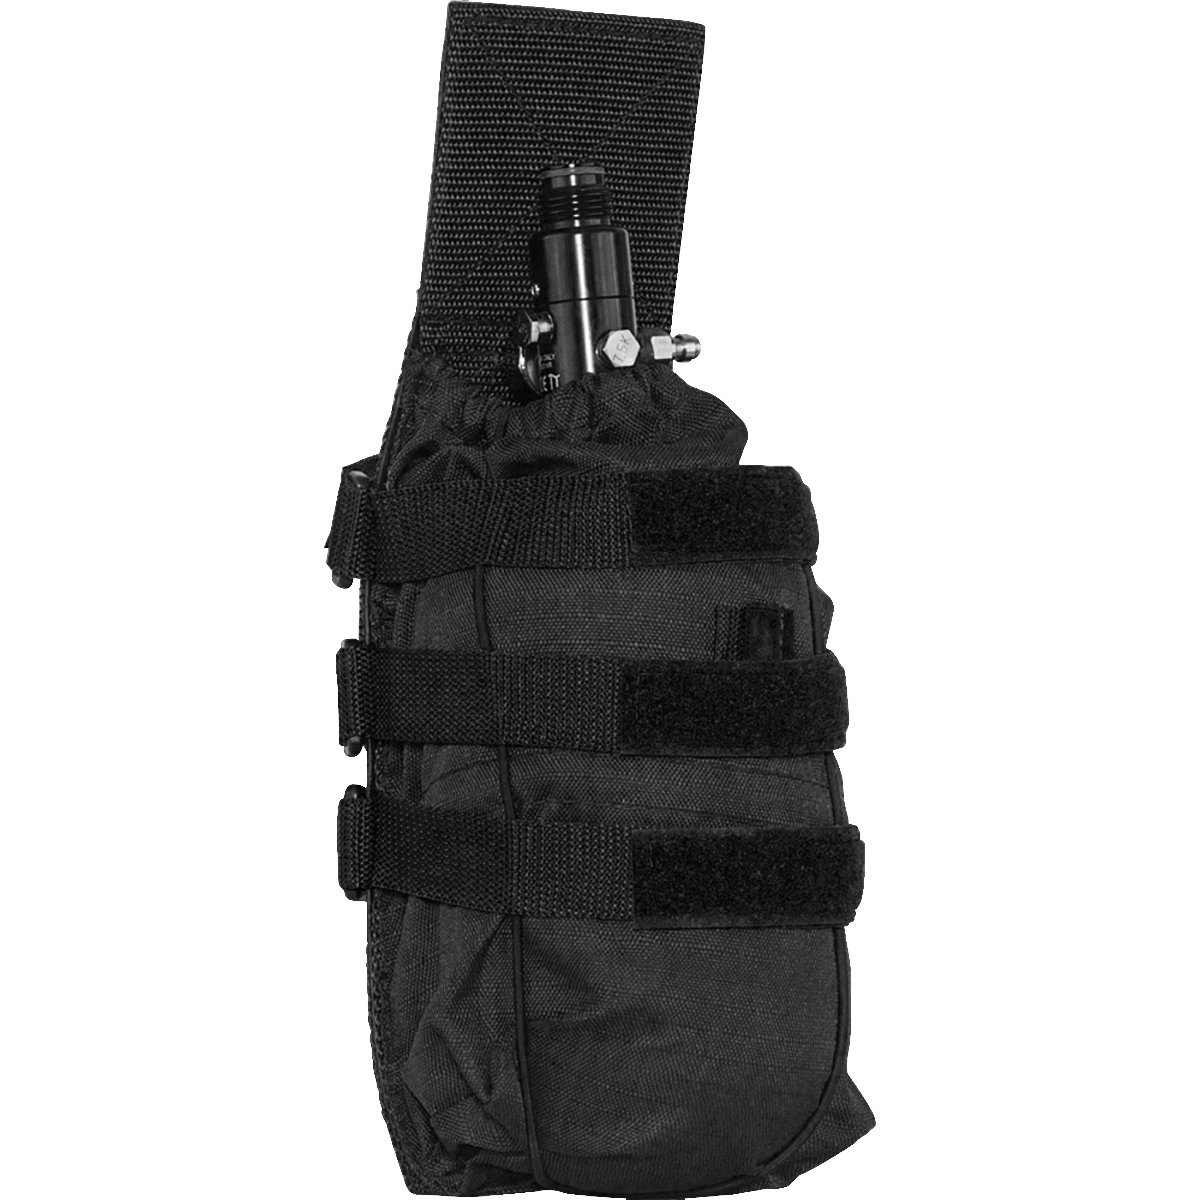 View larger image of Valken Universal Tank Pouch